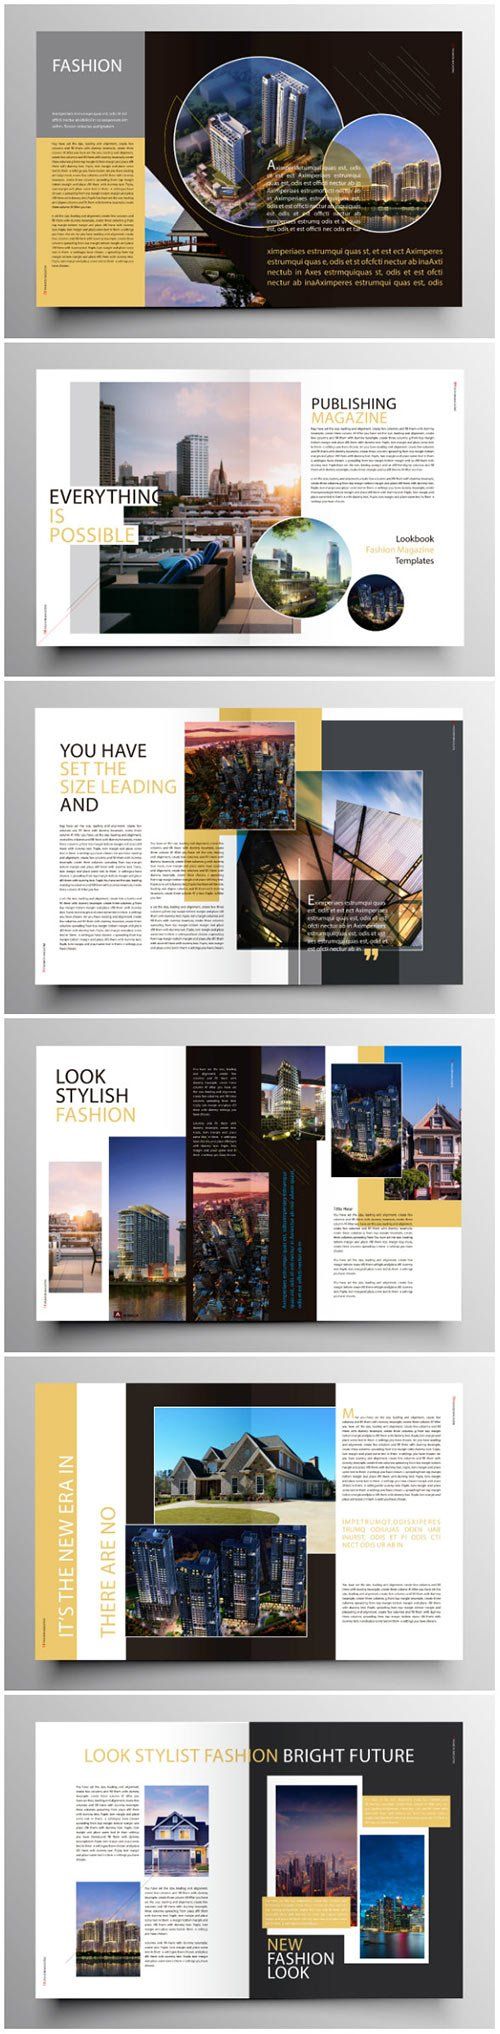 Brochure template vector layout design, corporate business annual report, magazine, flyer mockup # 196